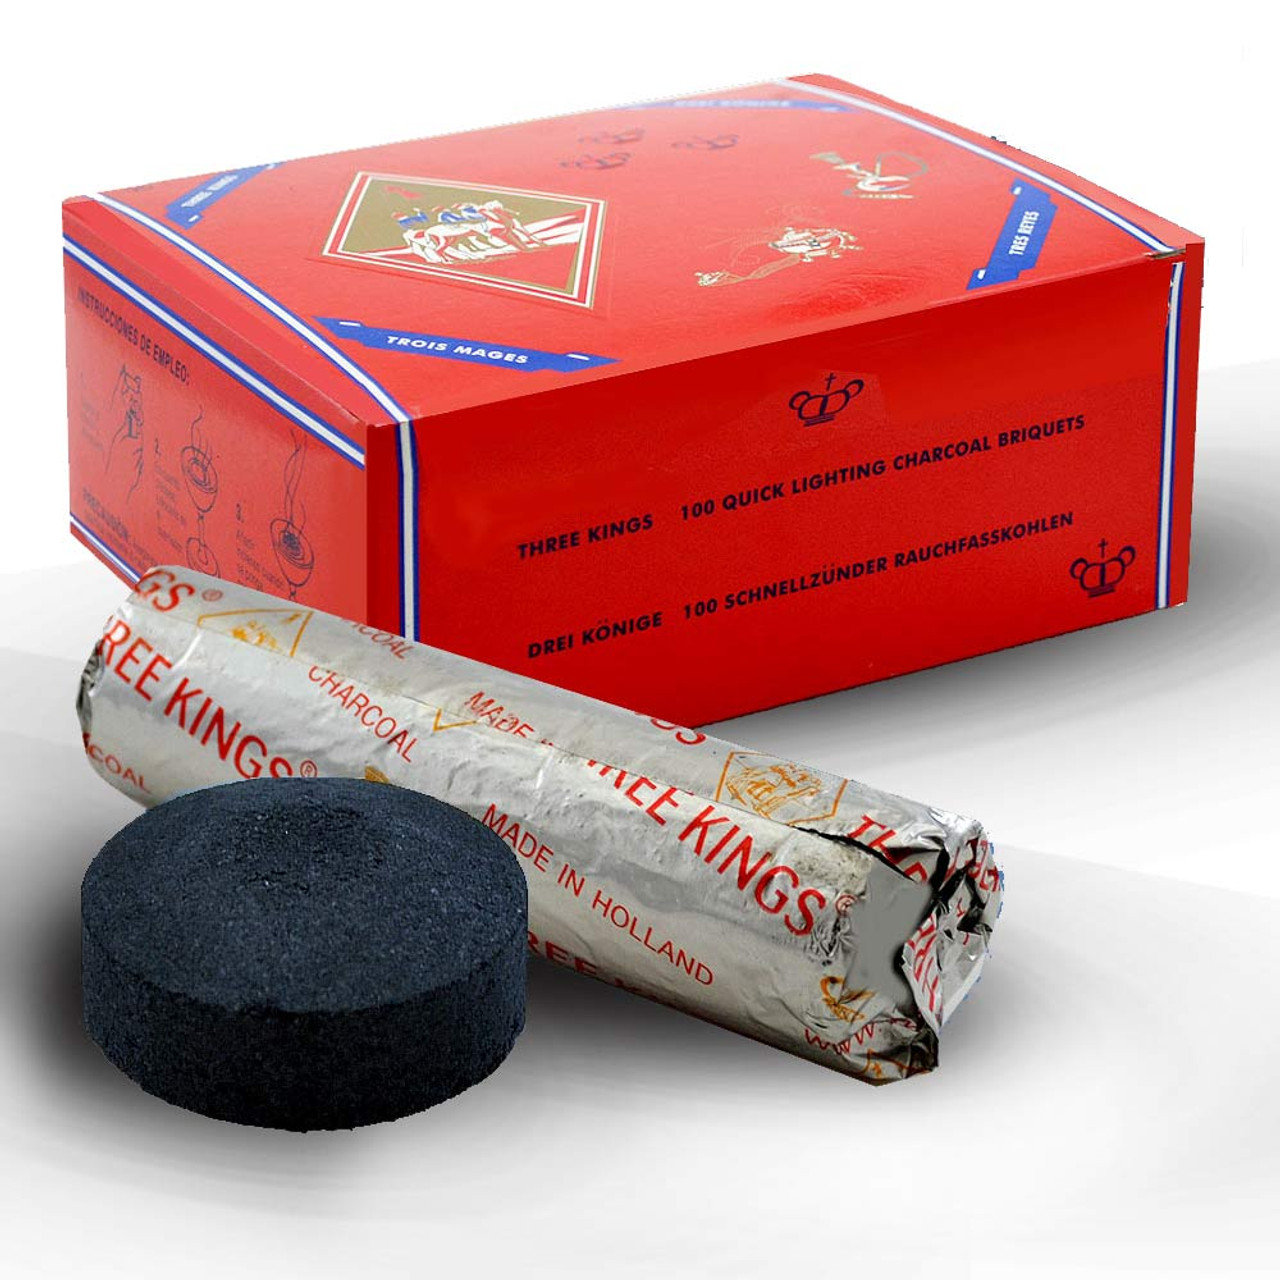 Three Kings Charcoal: Box of 100 with Smaller Briquettes